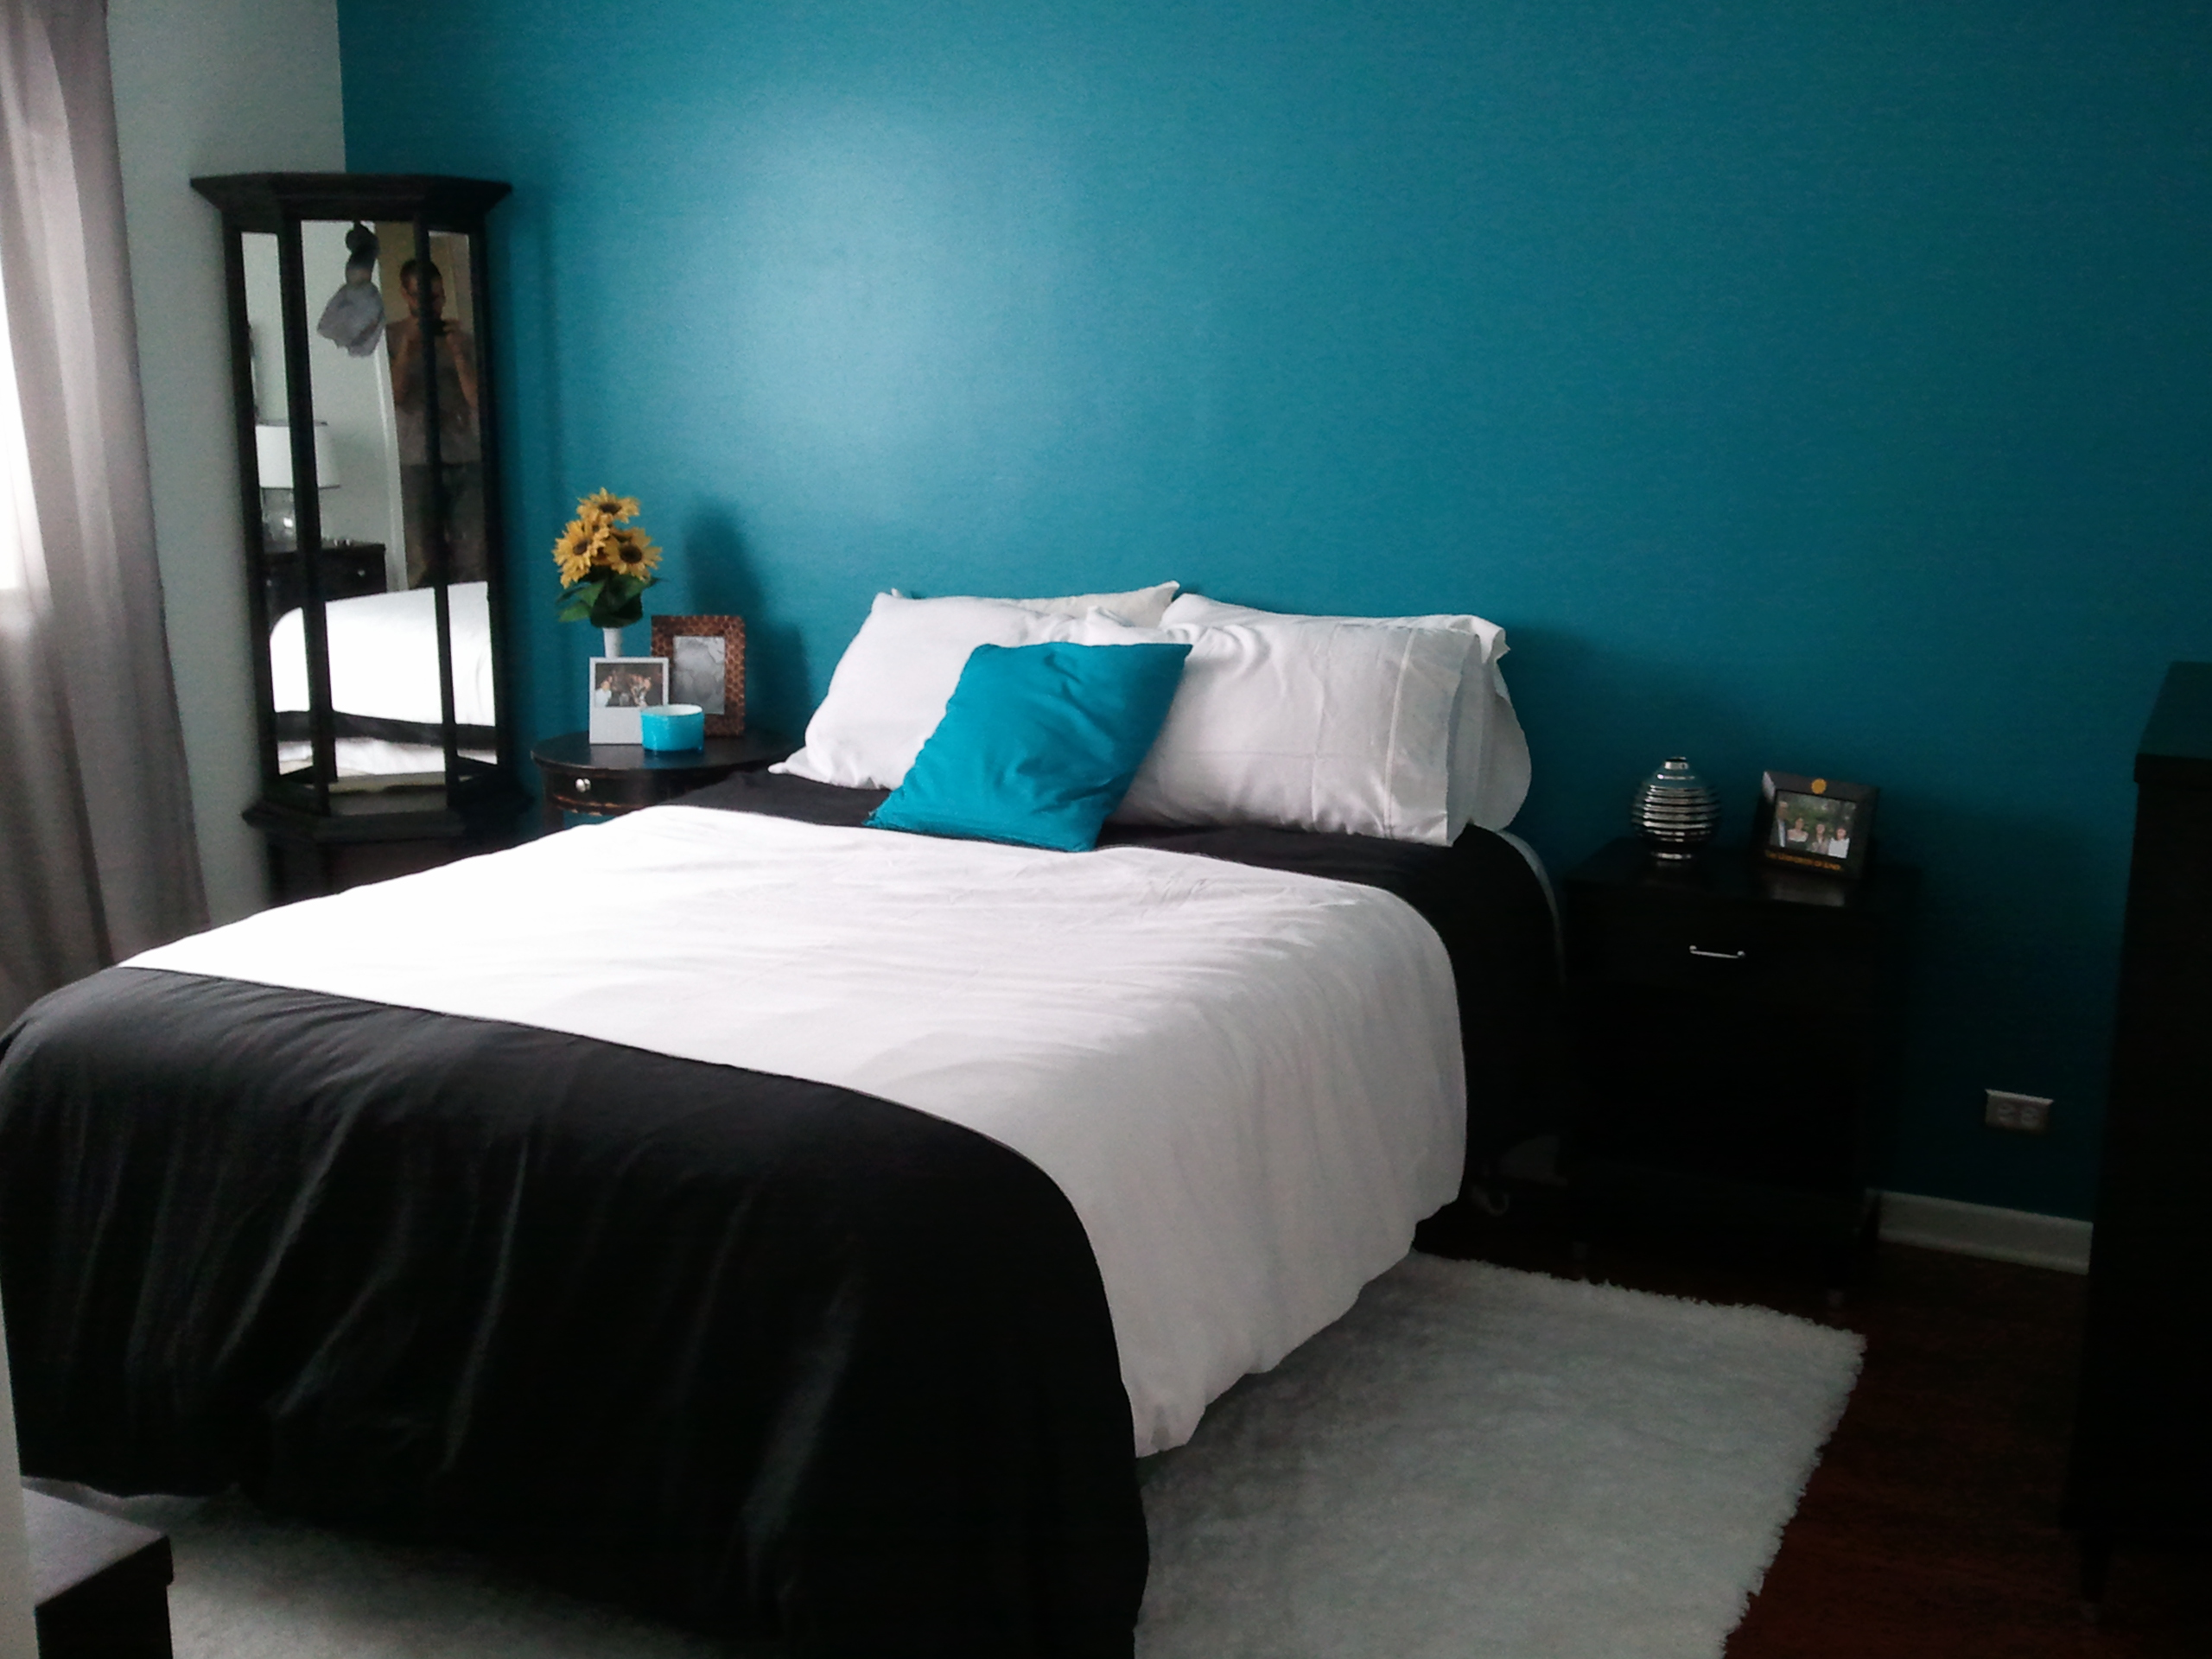 25 Teal Bedroom Designs You Will Love To Copy - Decoration Love